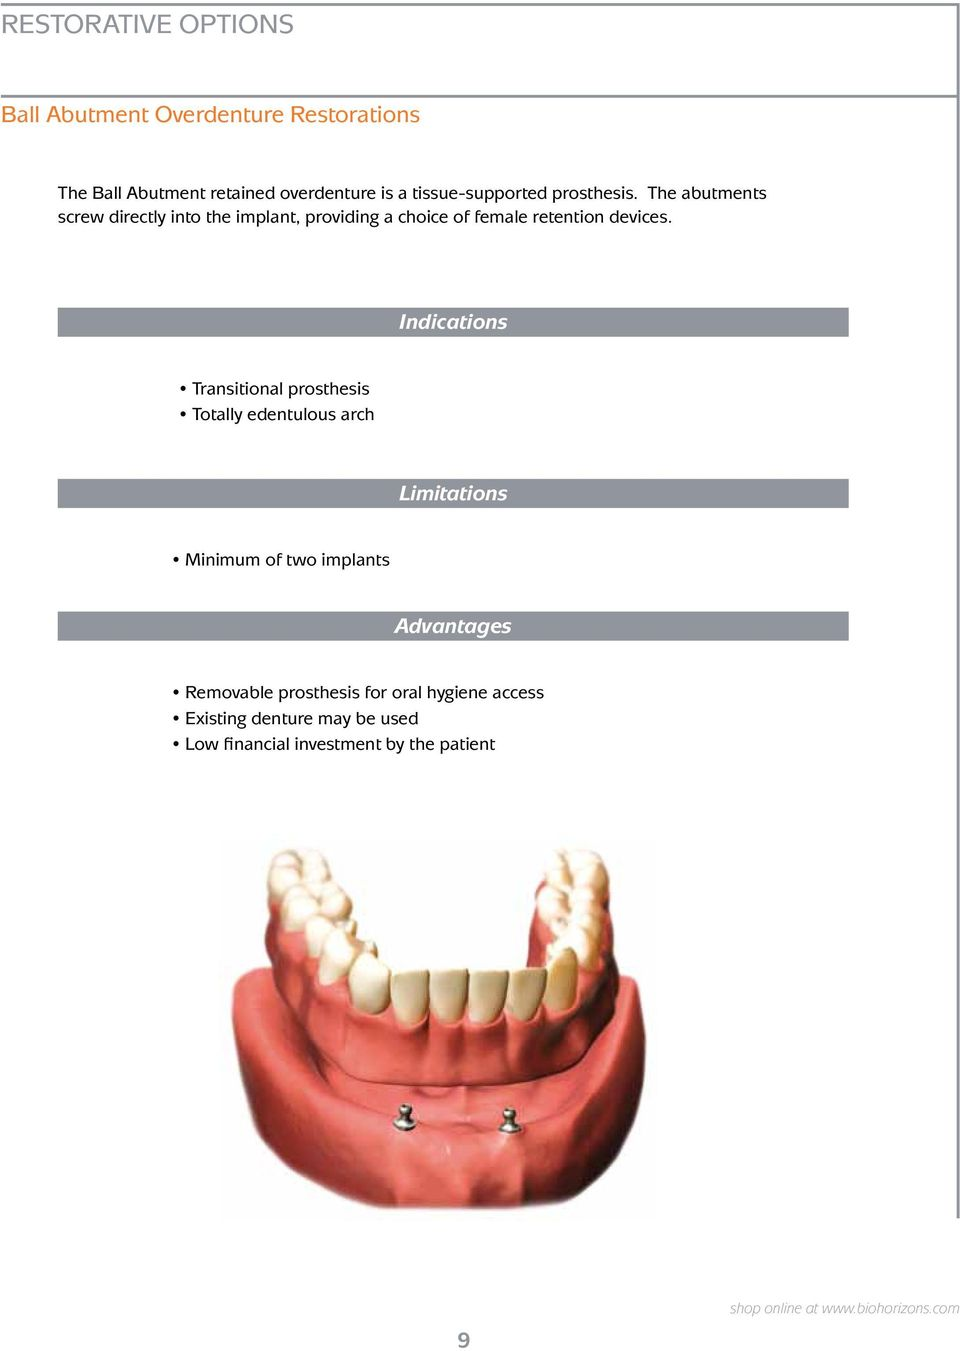 The abutments screw directly into the implant, providing a choice of female retention devices.